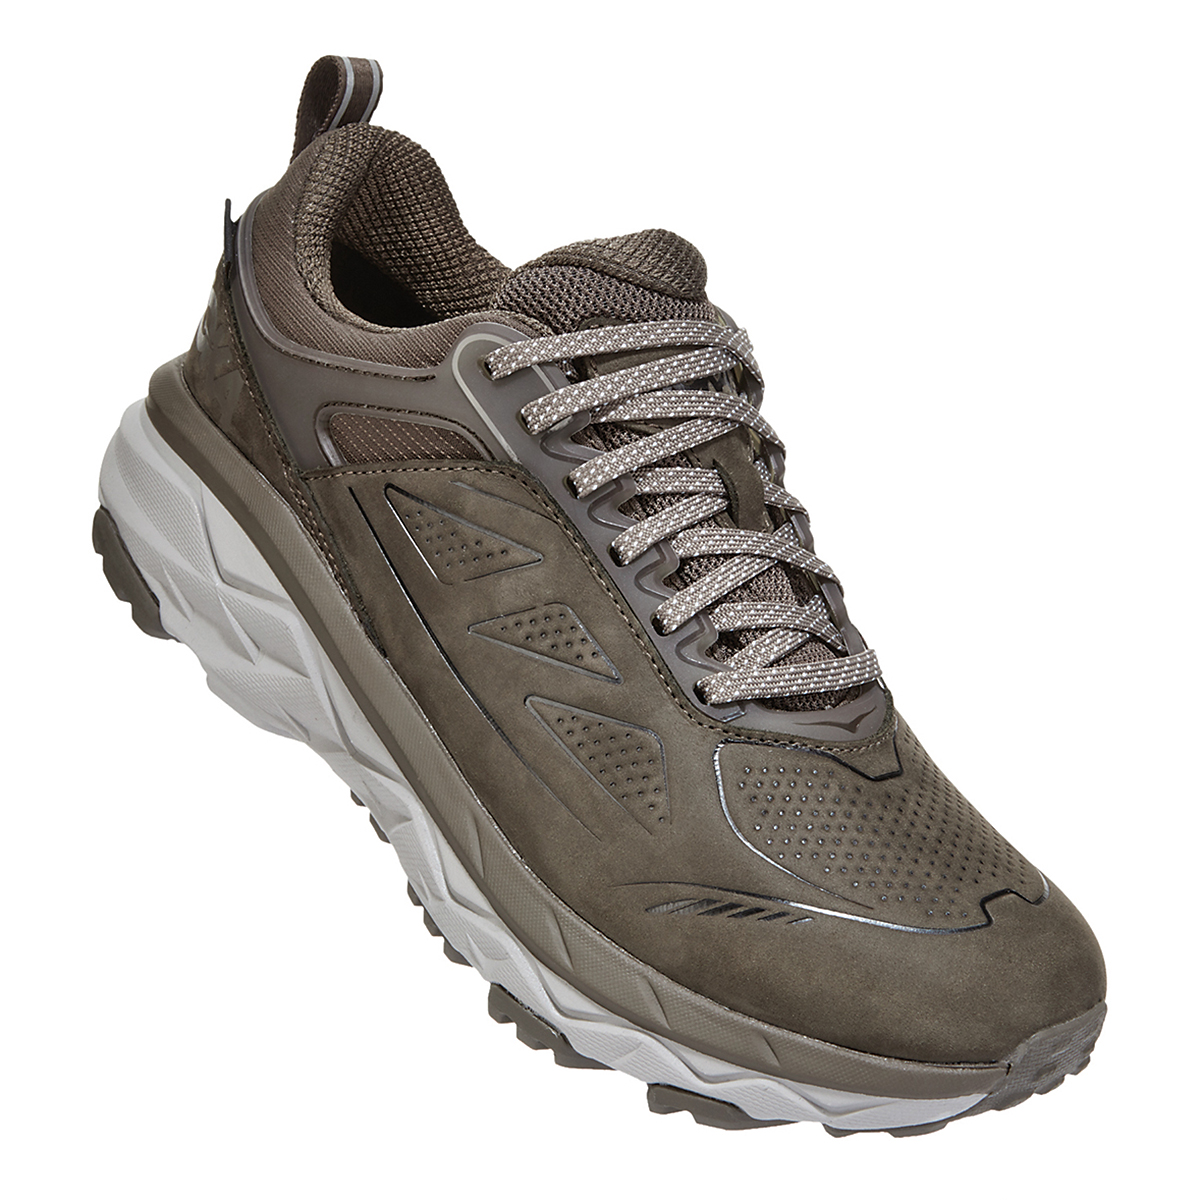 Women's Hoka One One Challenger Low Gore-Tex Trail Running Shoe - Color: Major Brown/Heather - Size: 5 - Width: Regular, Major Brown/Heather, large, image 2